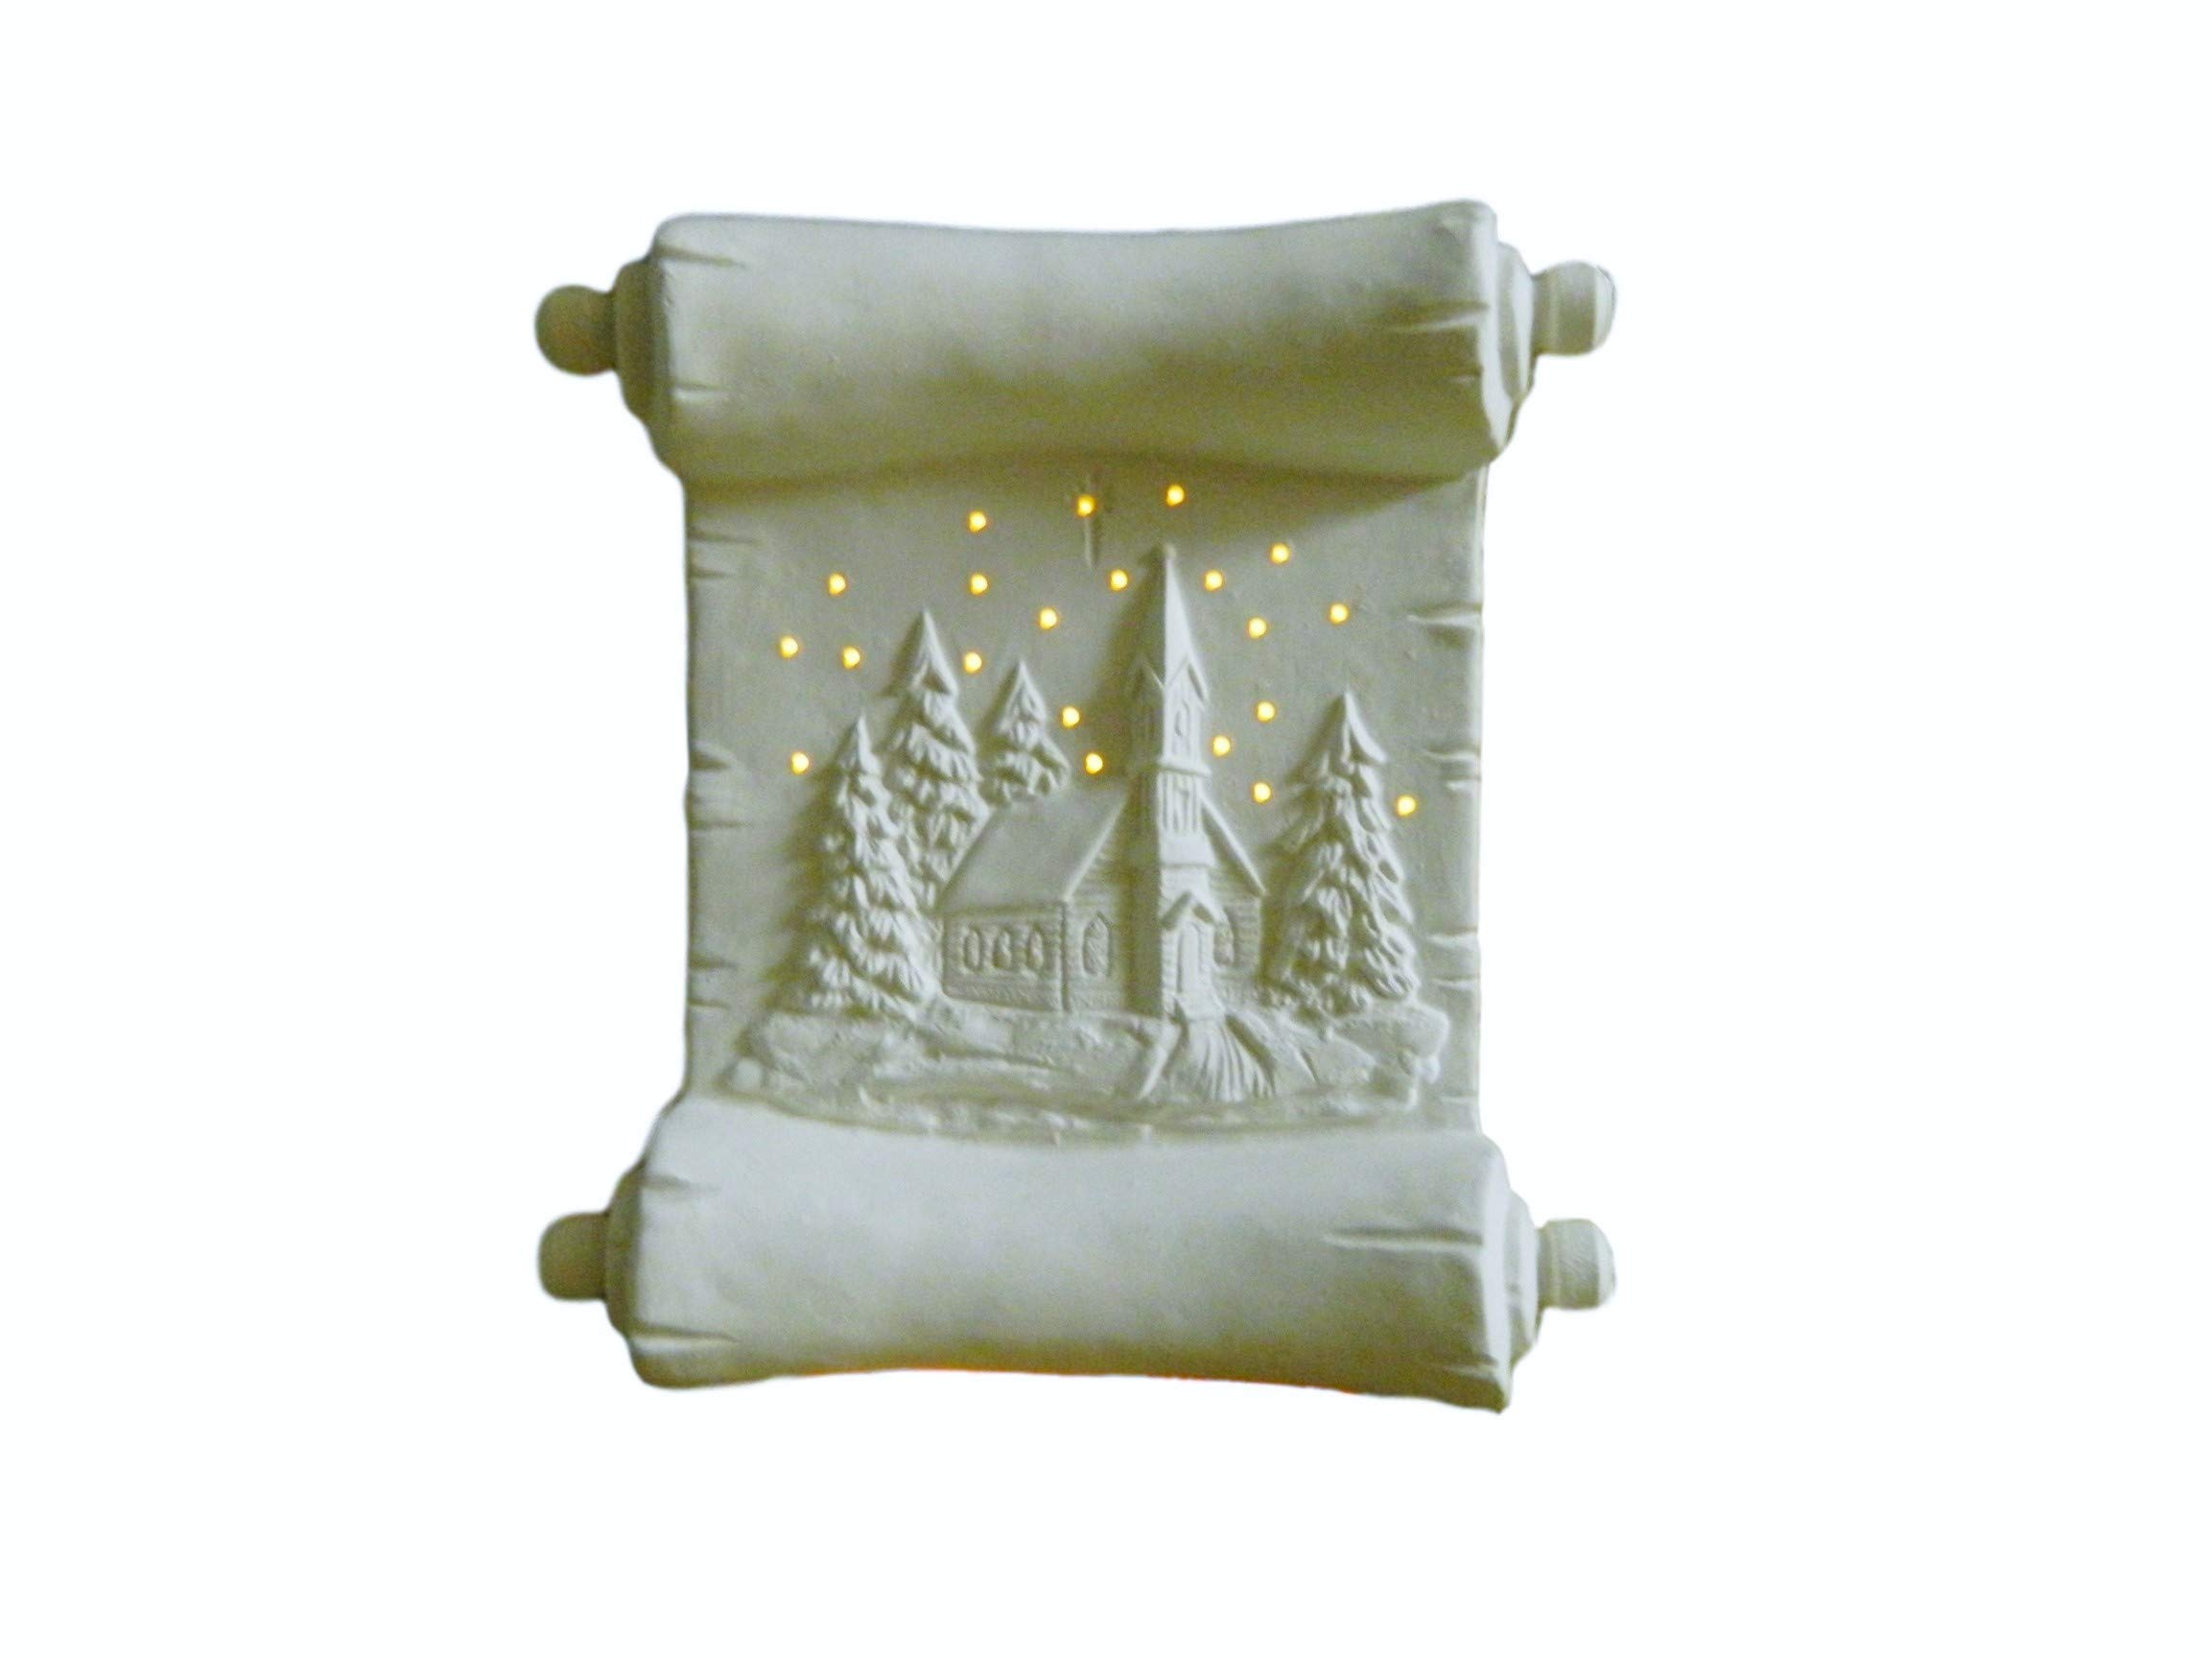 Illuminated Christmas Scroll Winter Scene Night Light - Ready to Paint Ceramic Bisque - Hand Poured in The USA (with White Clip in Light)